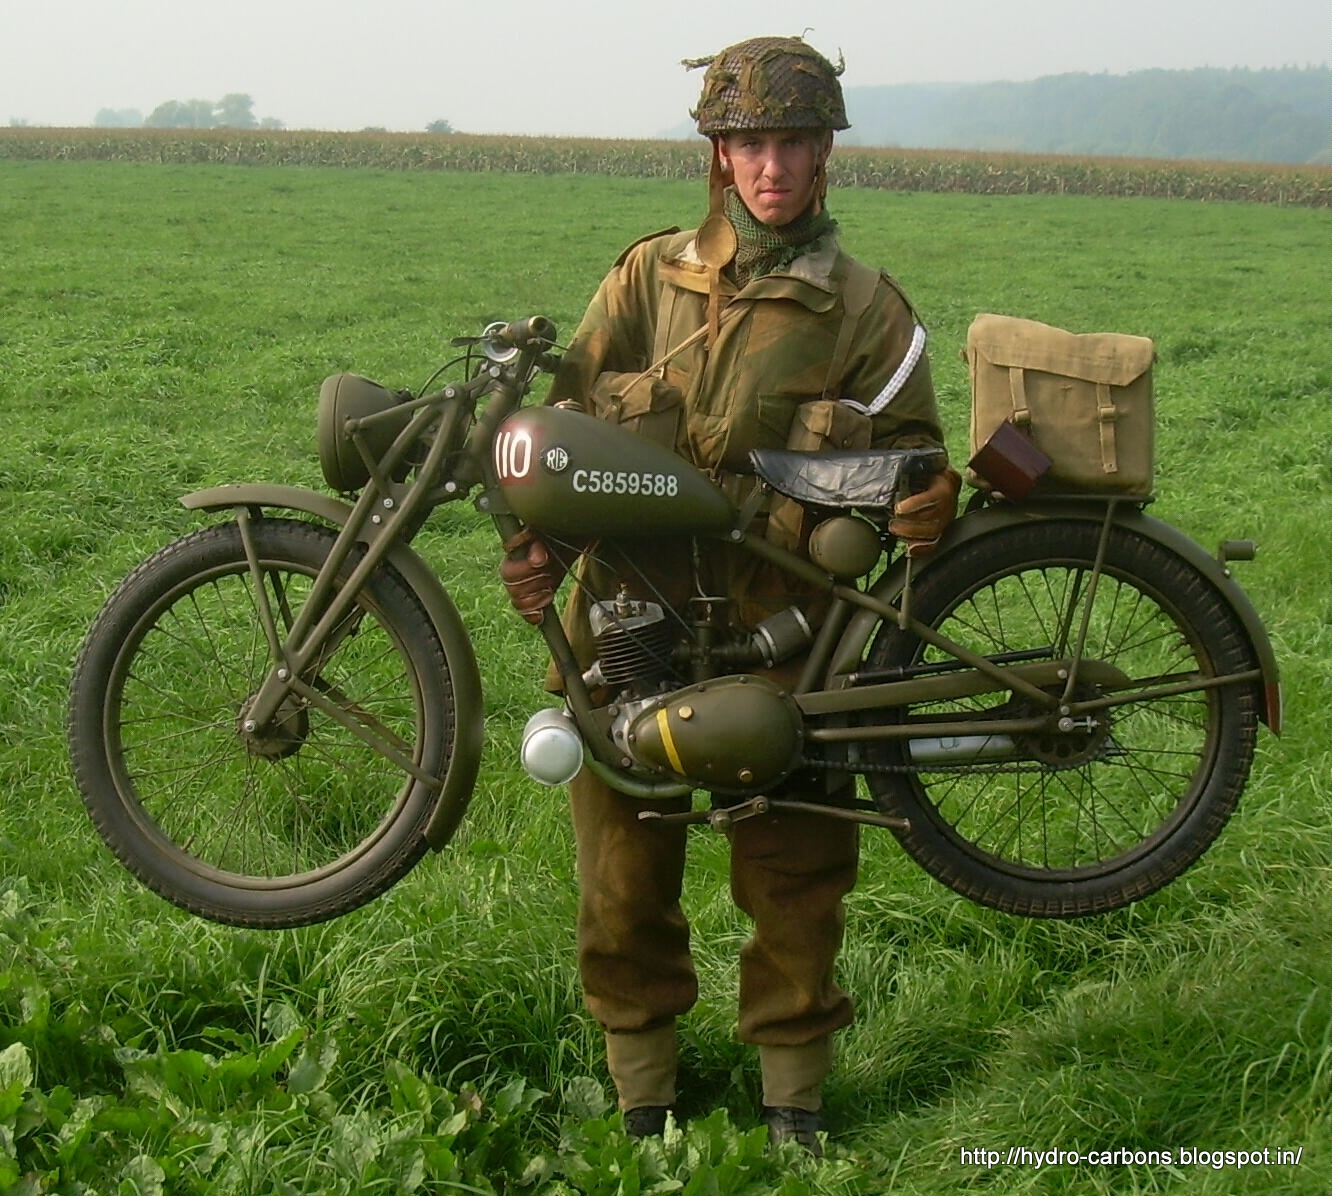 Dkw Motorcycle 2 Stroke Engine Dkw Free Engine Image For